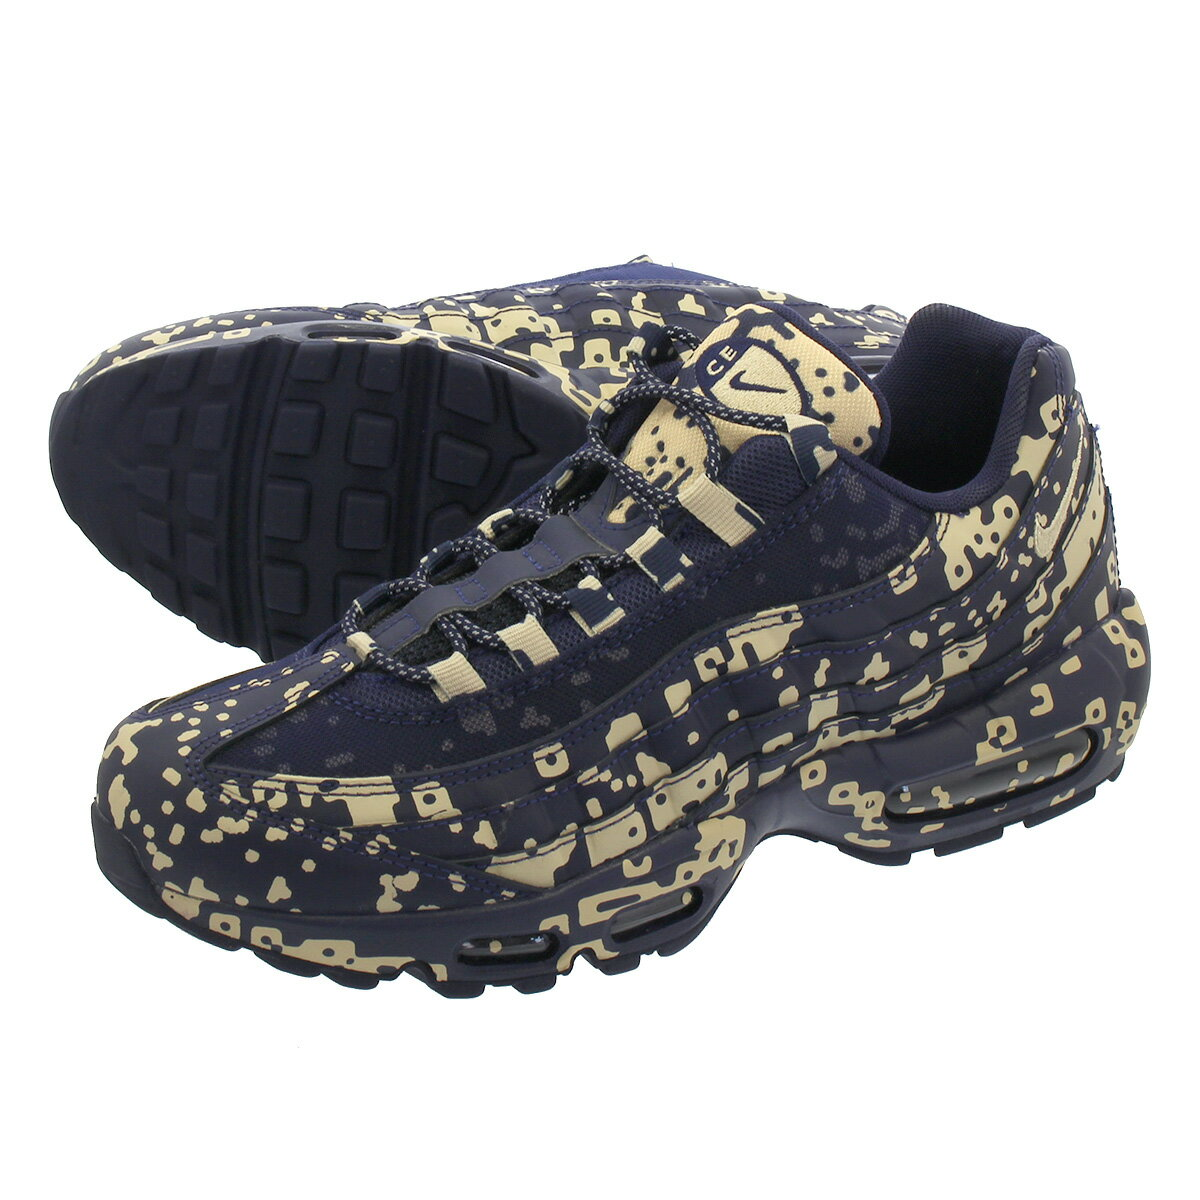 メンズ靴, スニーカー NIKE AIR MAX 95 CAV EMPT 95 BLACKENED BLUEDESERT OREav0765-400